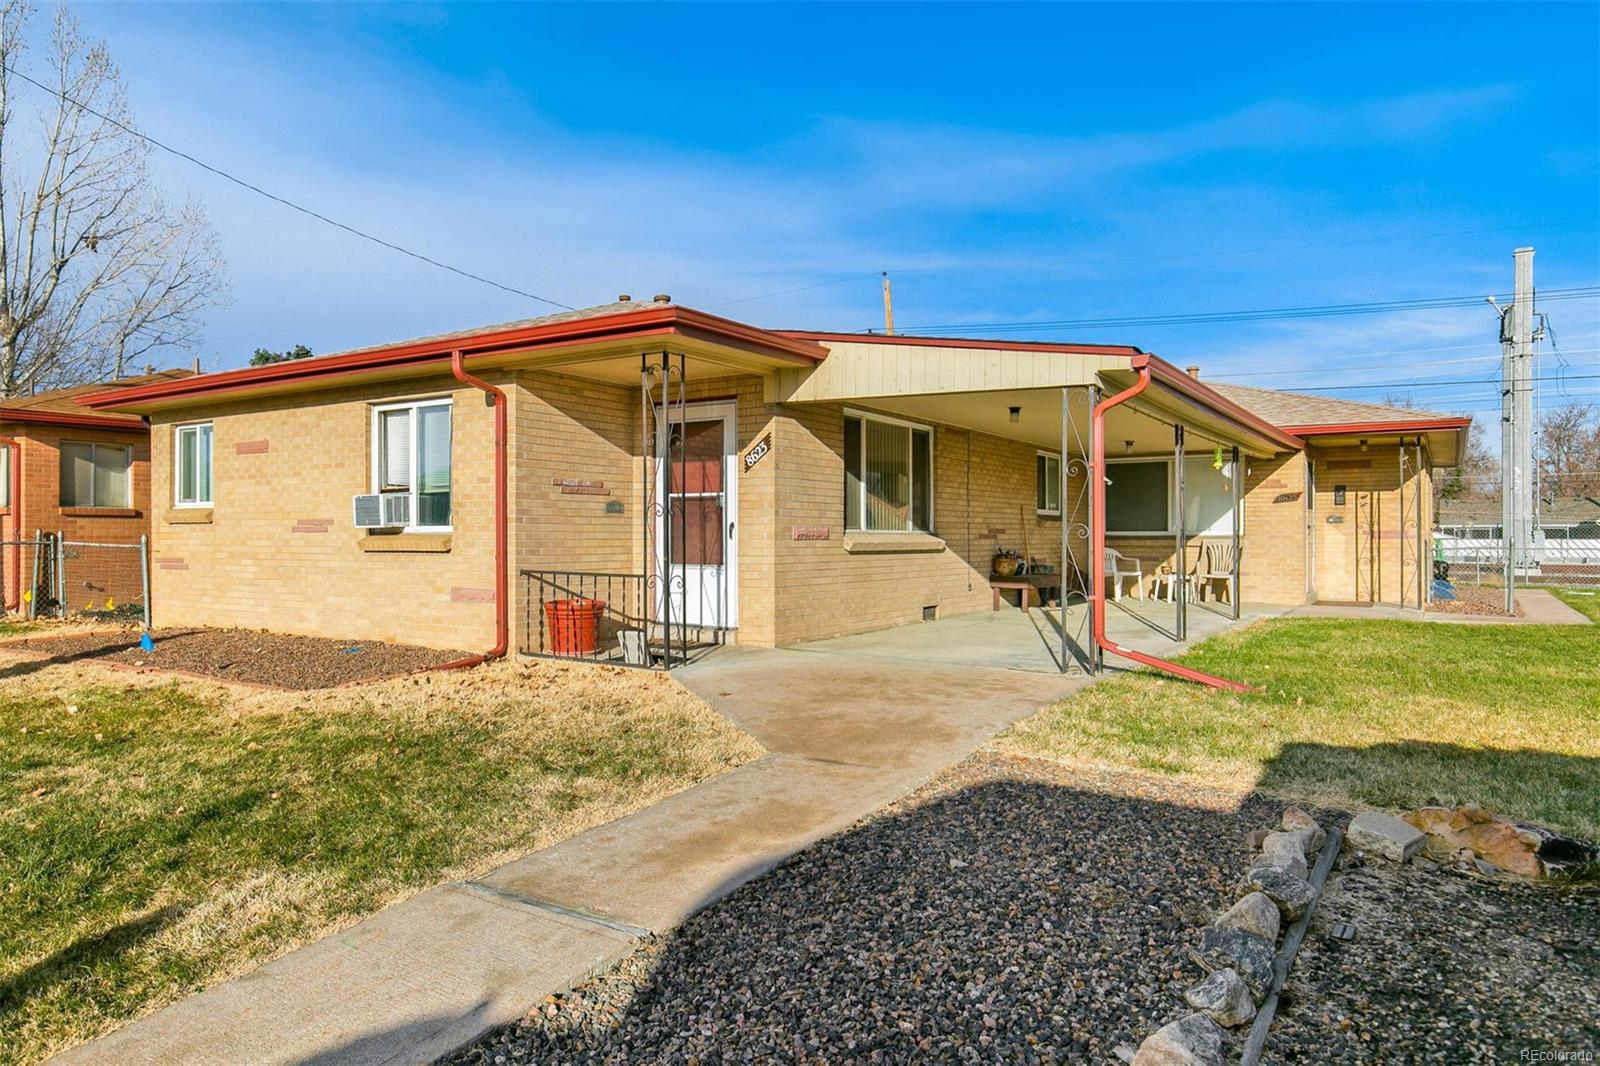 8623 W 54th Place, Arvada, CO 80002 - Arvada, CO real estate listing